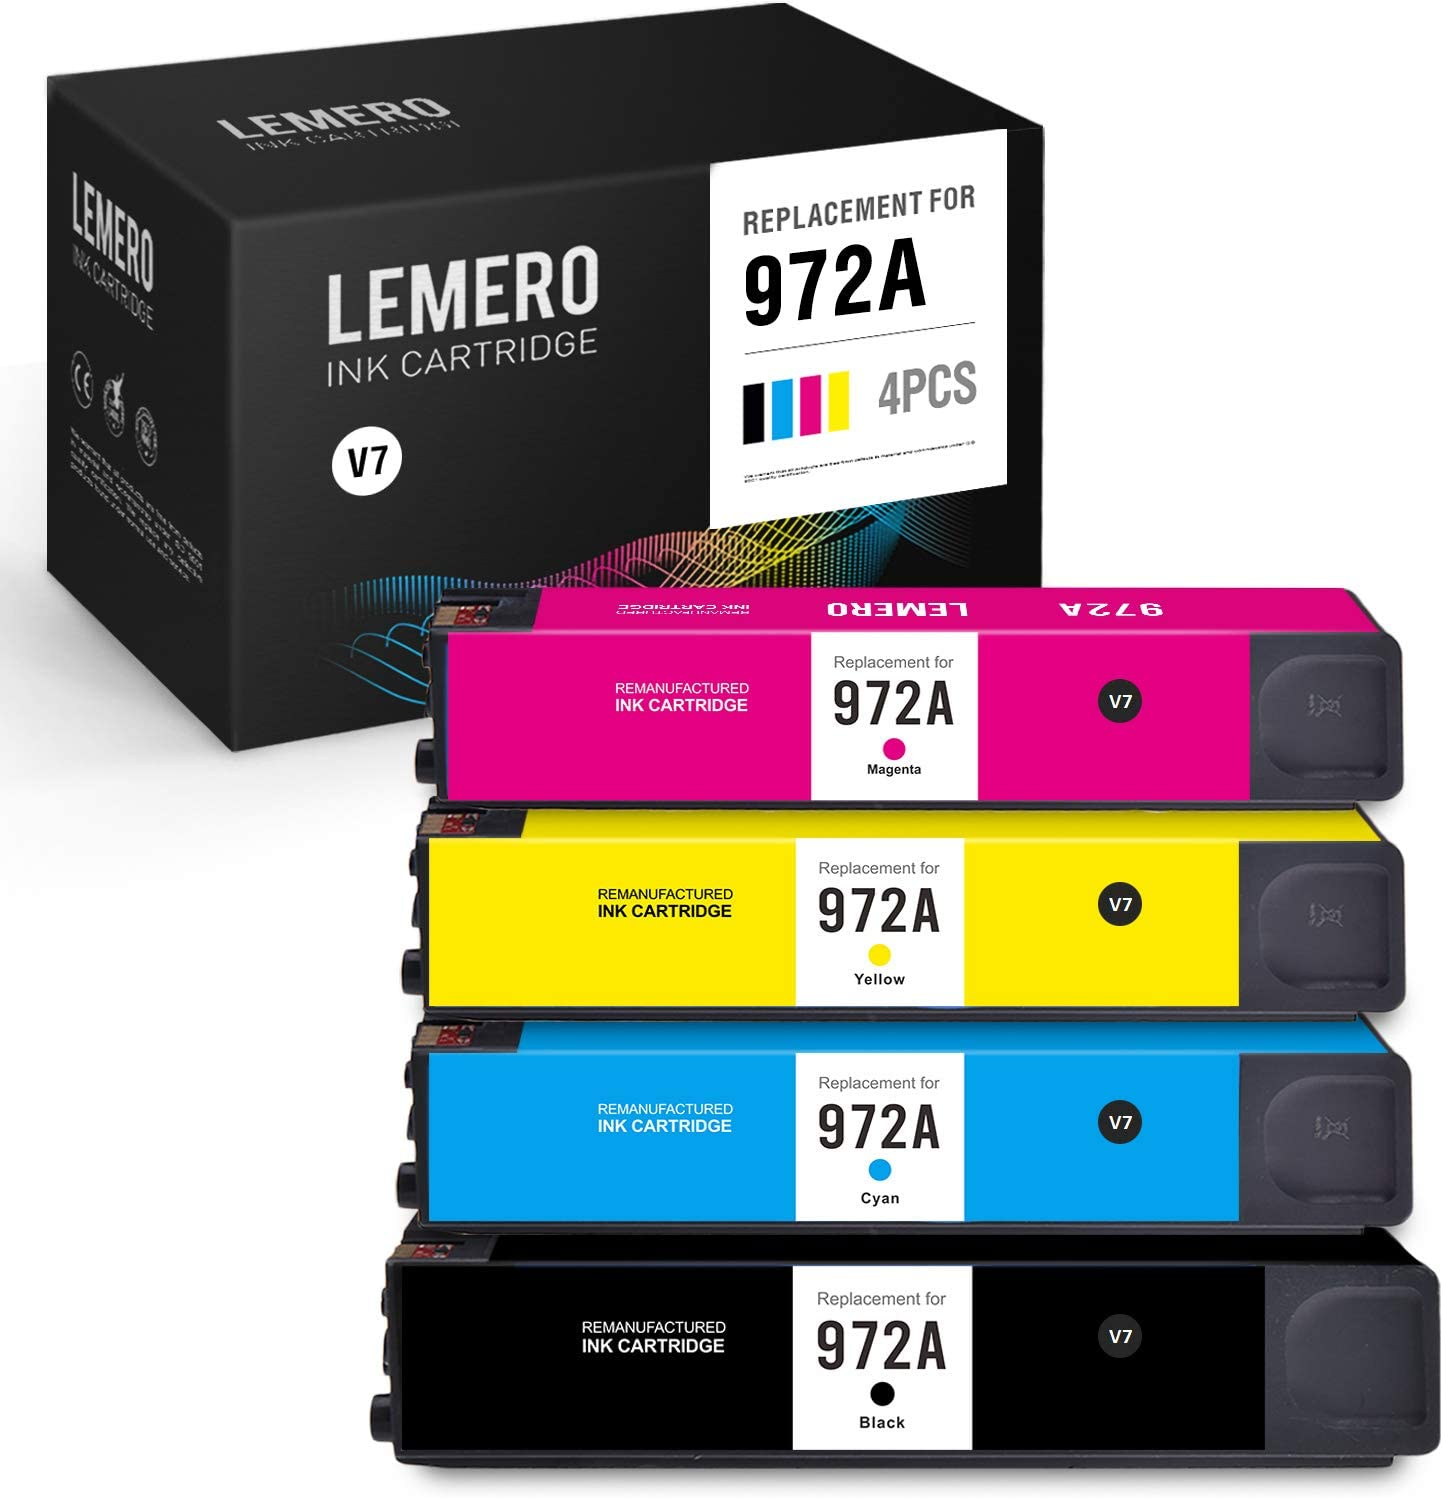 LEMERO V7 Remanufactured Ink Cartridge Replacement for HP 972A 972X 972 to use with Pagewide Pro MFP 577dw 477dw 477dn Pro 452dn 452dw 552dw P57750dw (Black Cyan Magenta Yellow, 4-Pack)